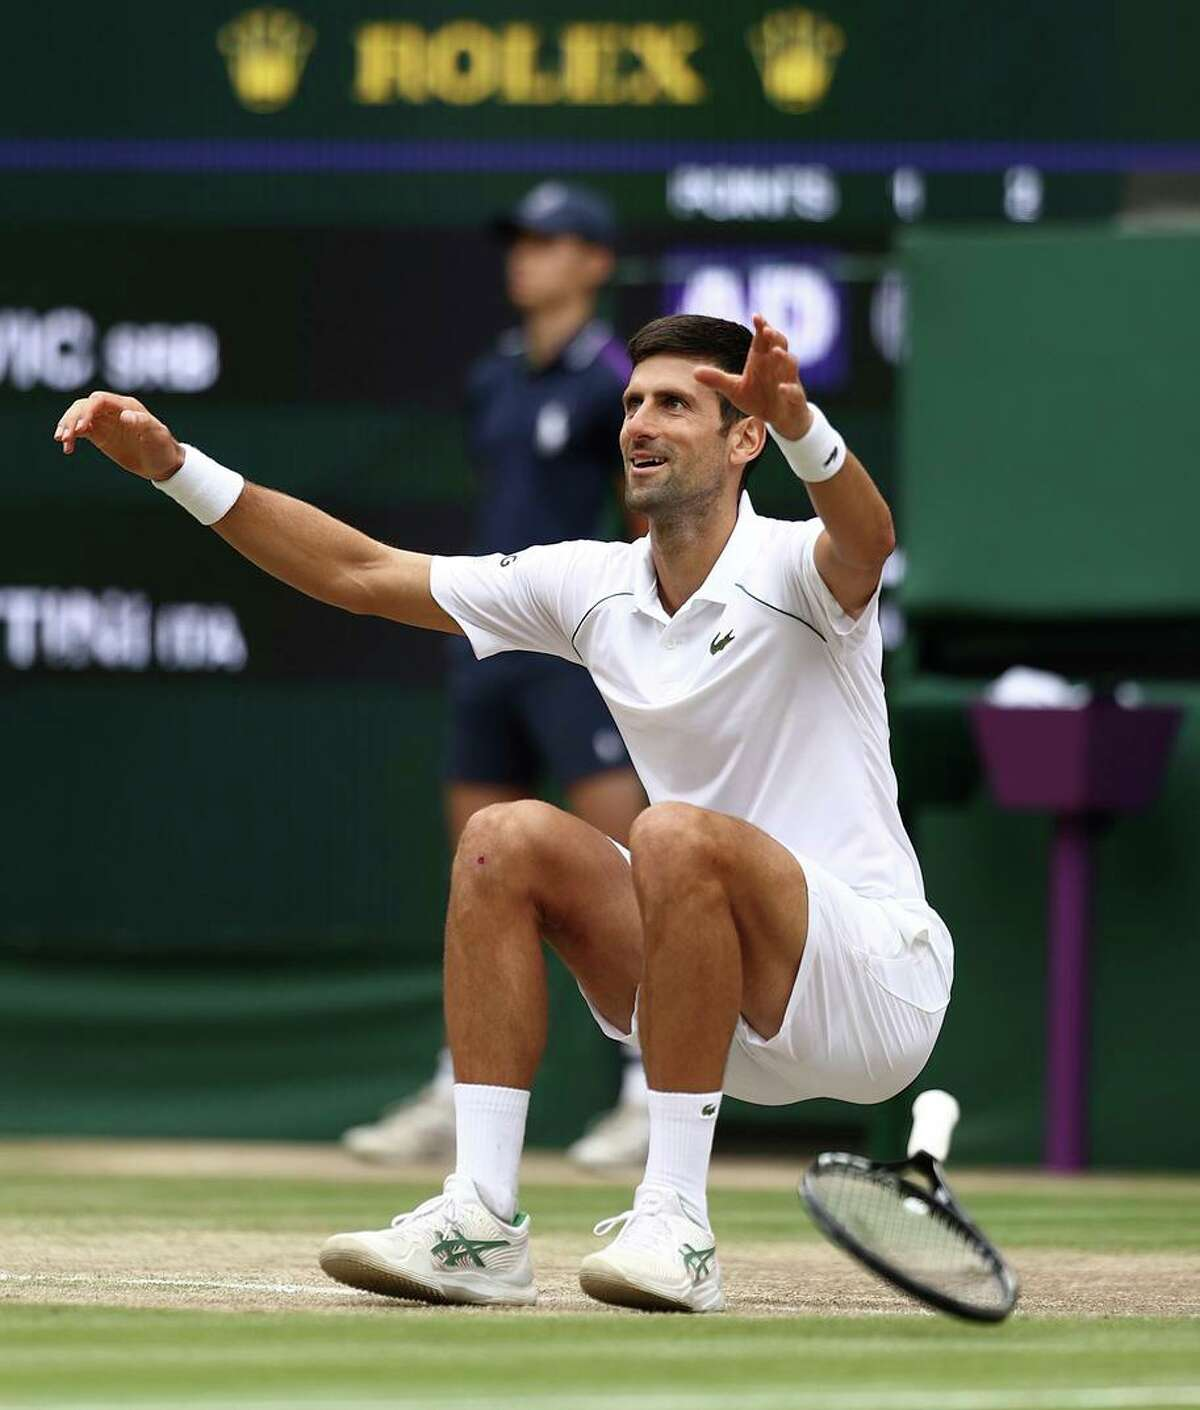 Novak Djokovic's win at Wimbledon is his 20th Grand Slam title, equal with Roger Federer and Rafael Nadal.